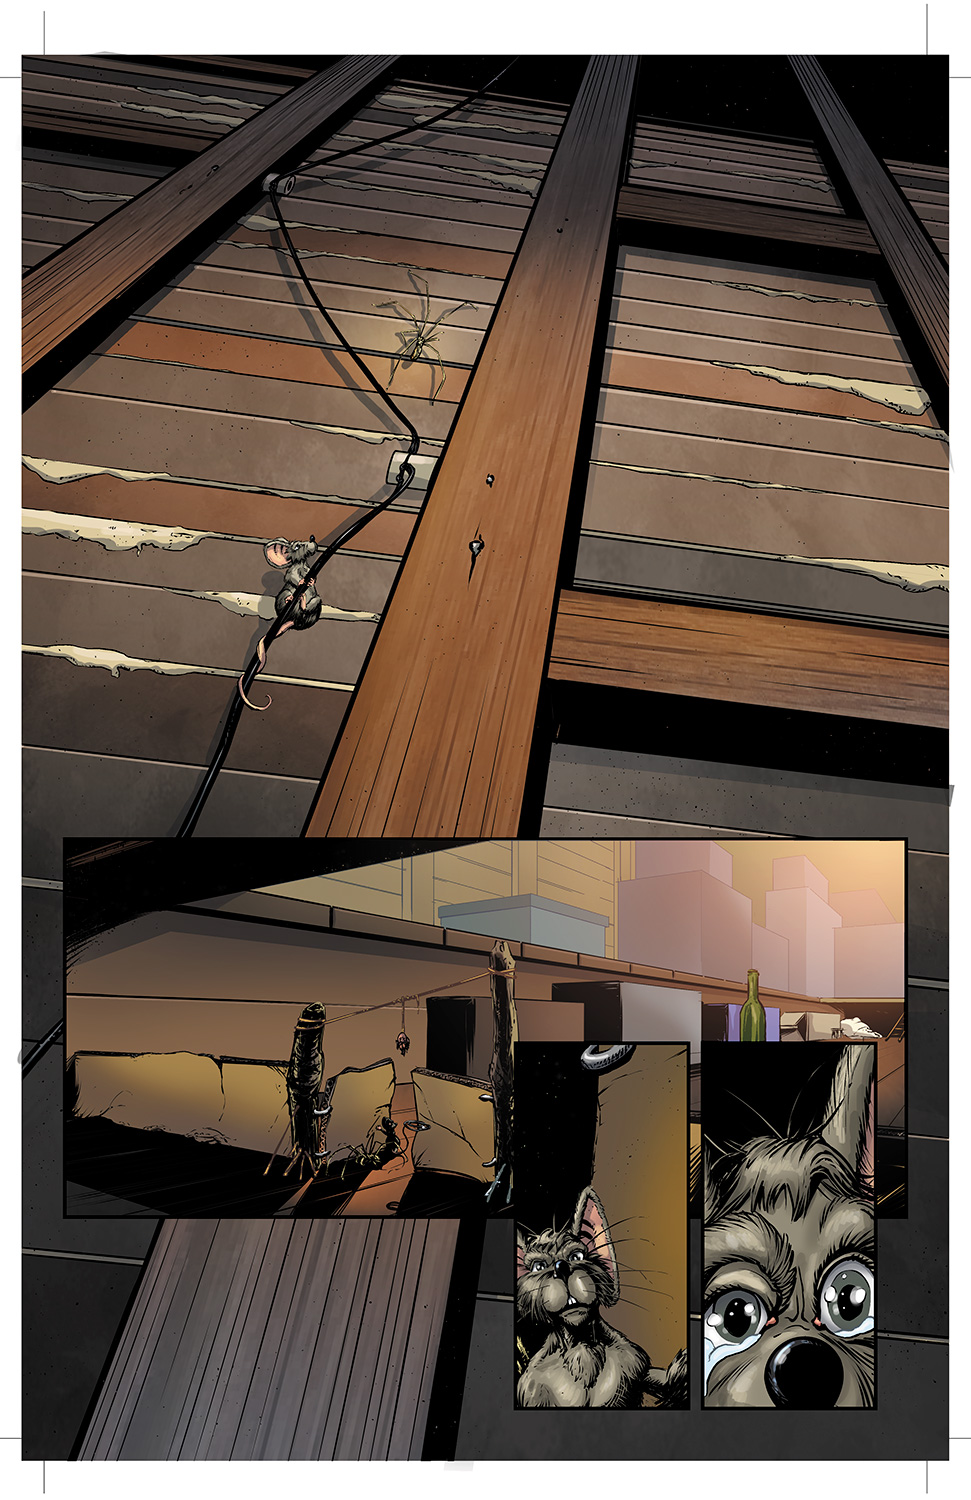 One of my favorite pages from Wretched #1